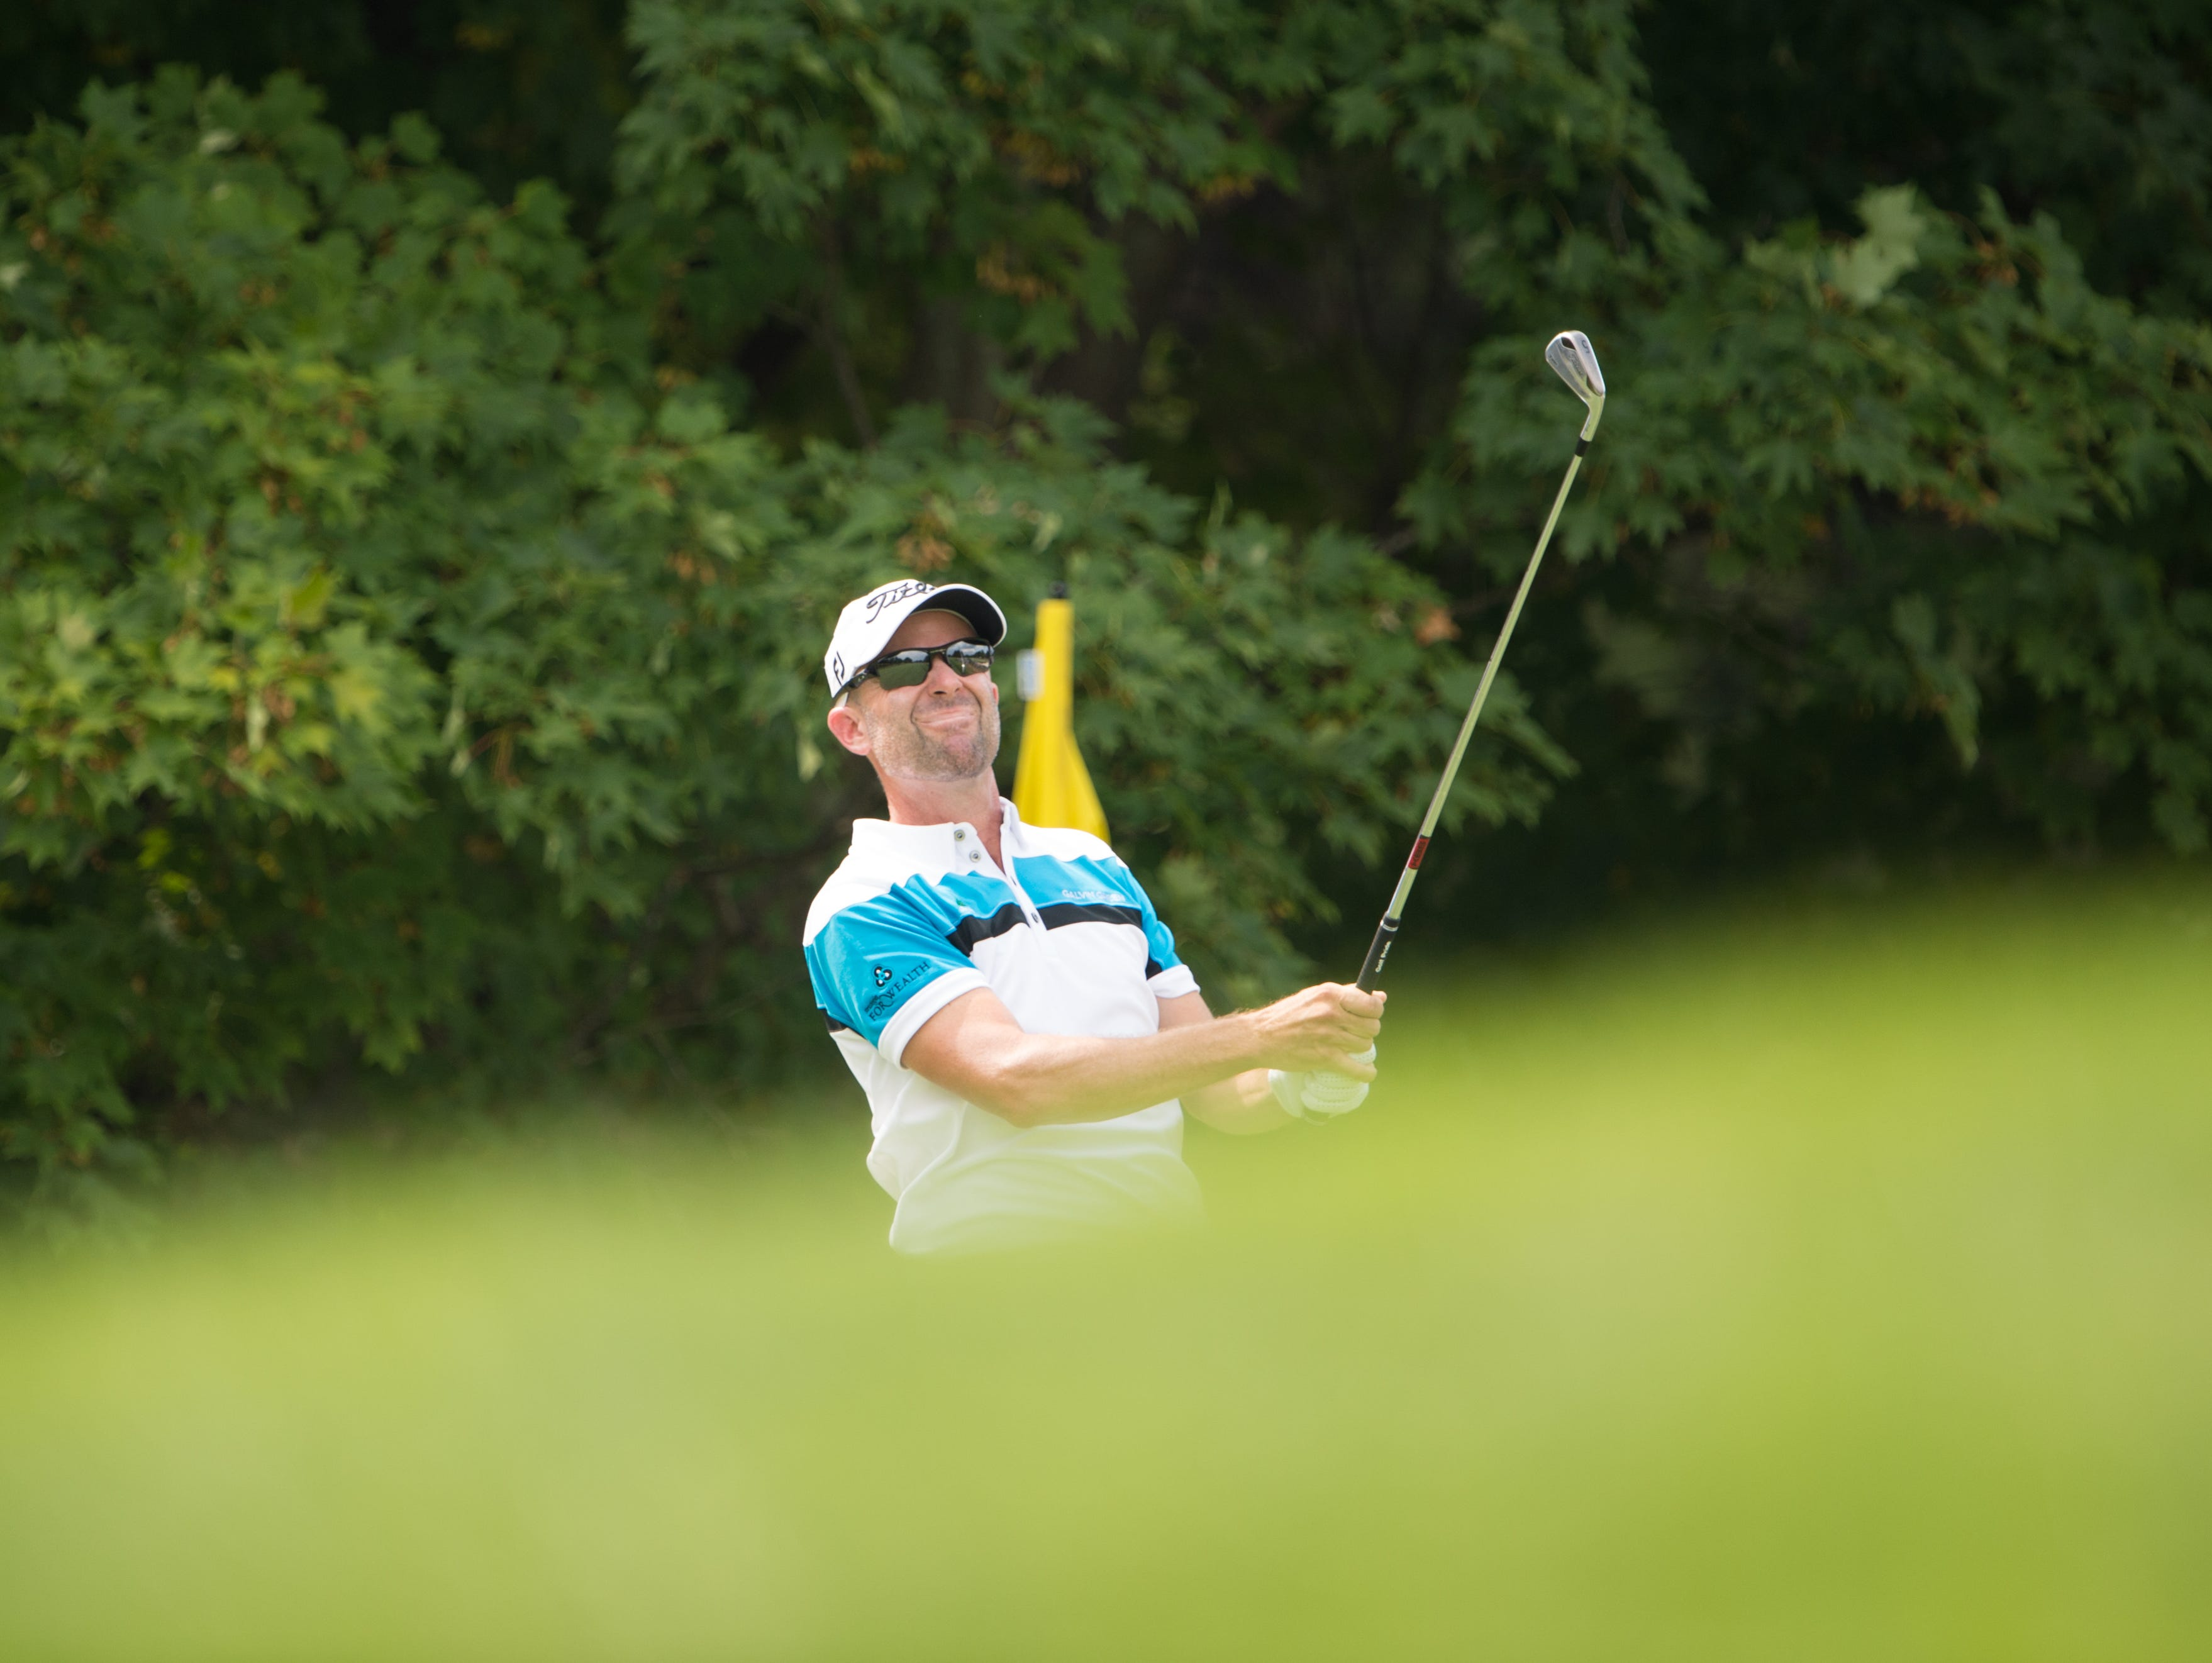 SPRINGFIELD, NJ - JULY 28: PGA Club Professional, Rob Labritz hits his tee shot on the 12th hole during the first round of the 98th PGA Championship held at the Baltusrol Golf Club on July 28, 2016 in Springfield, New Jersey. (Photo by Montana Pritchard/The PGA of America)